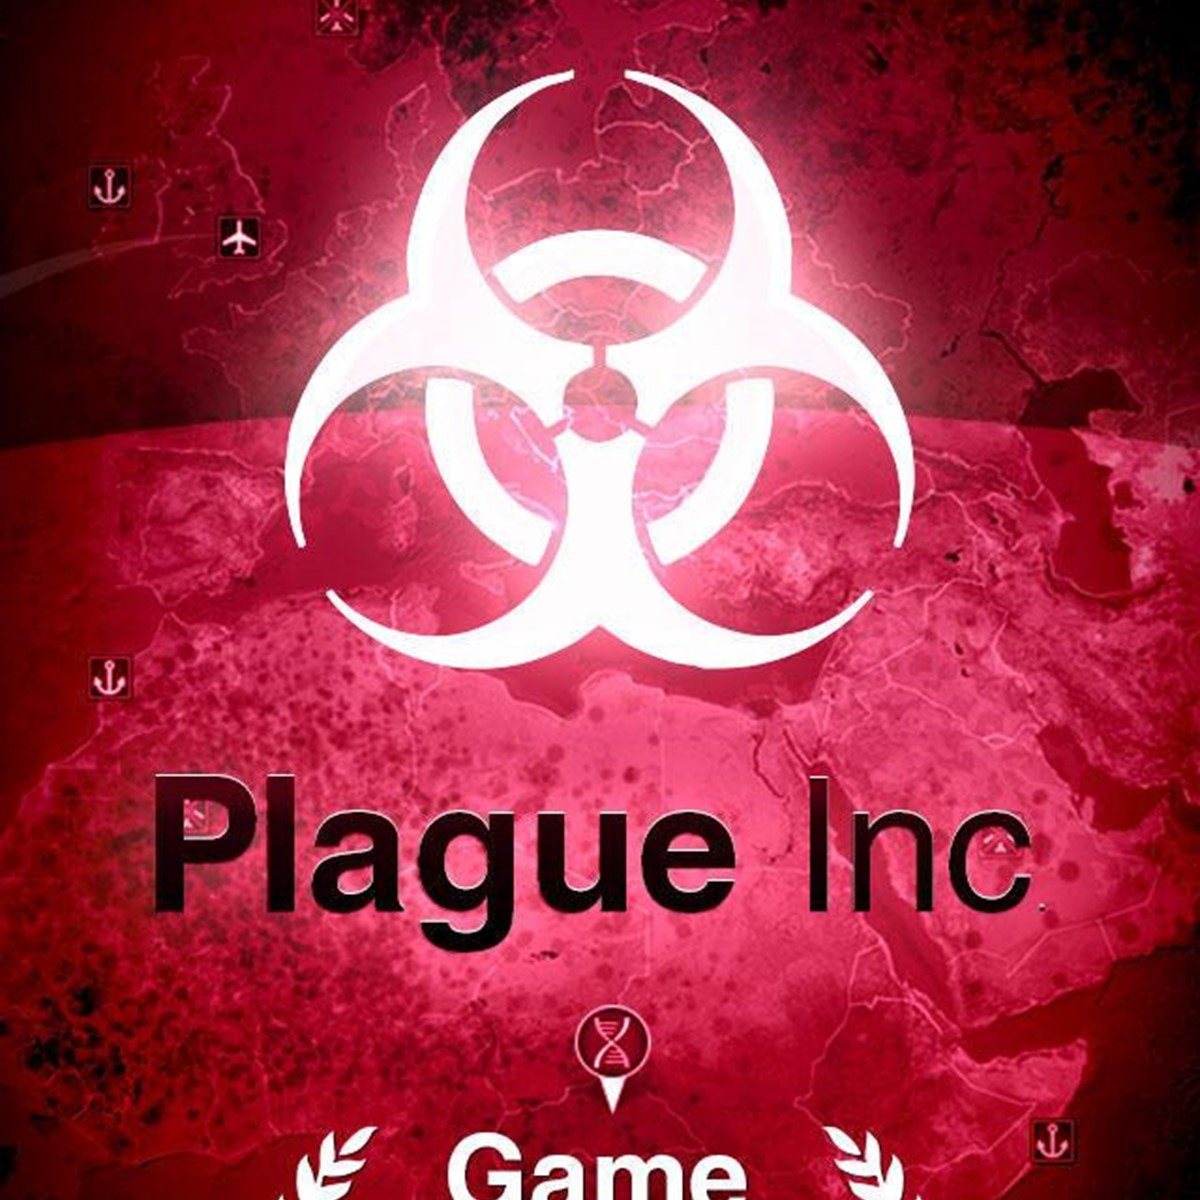 By Incorporated: Plague Inc. Alternatives And Similar Games